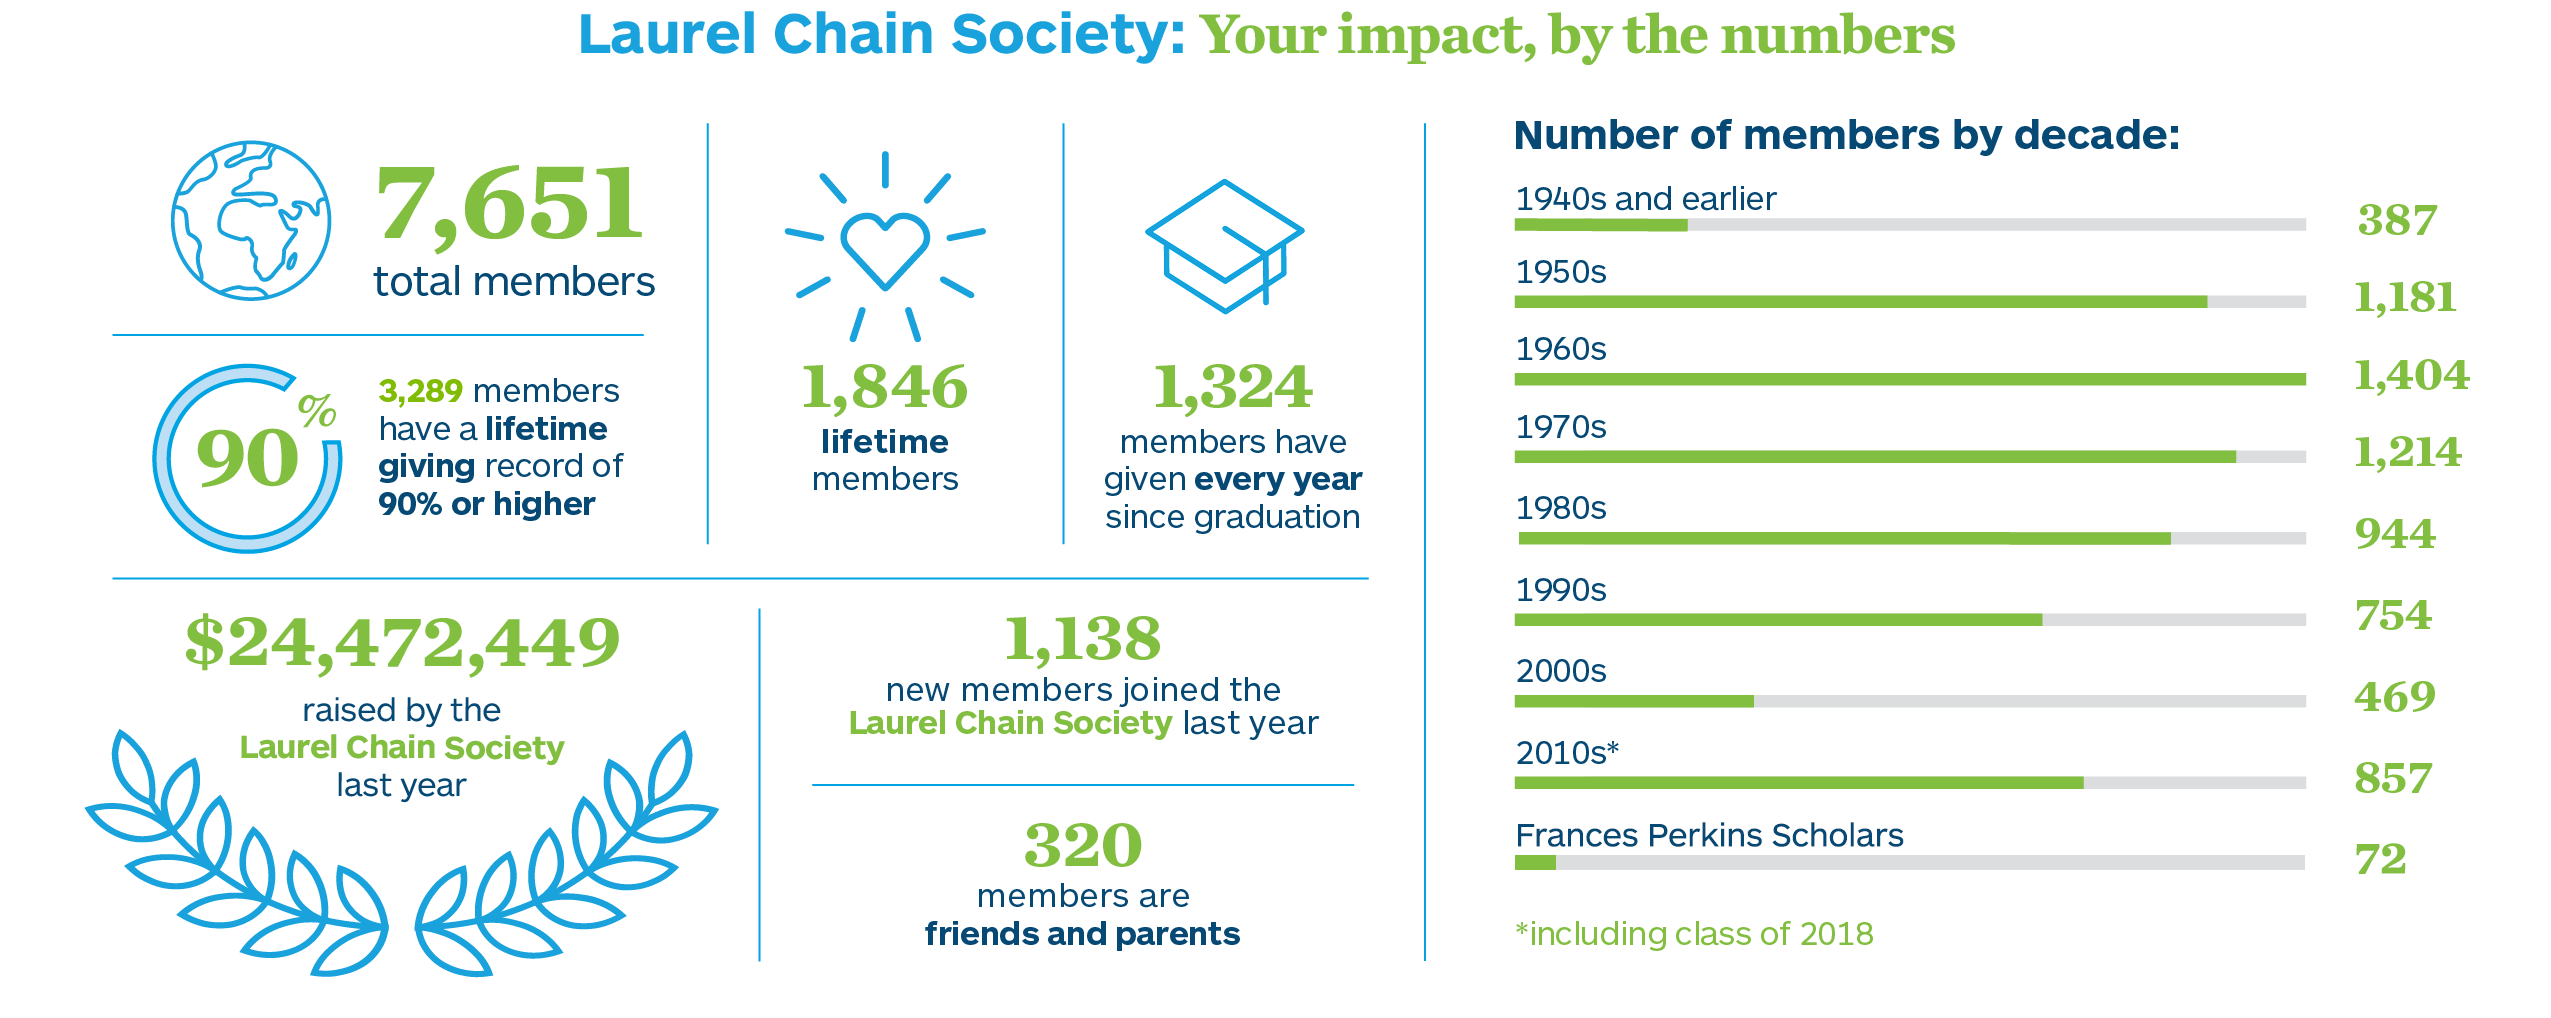 7651 Laurel Chain Society members invested more than $24.4 million in MHC last year. Of these, 1846 are lifetime members, 1324 have given every year since graduation, and 1138 were new members.